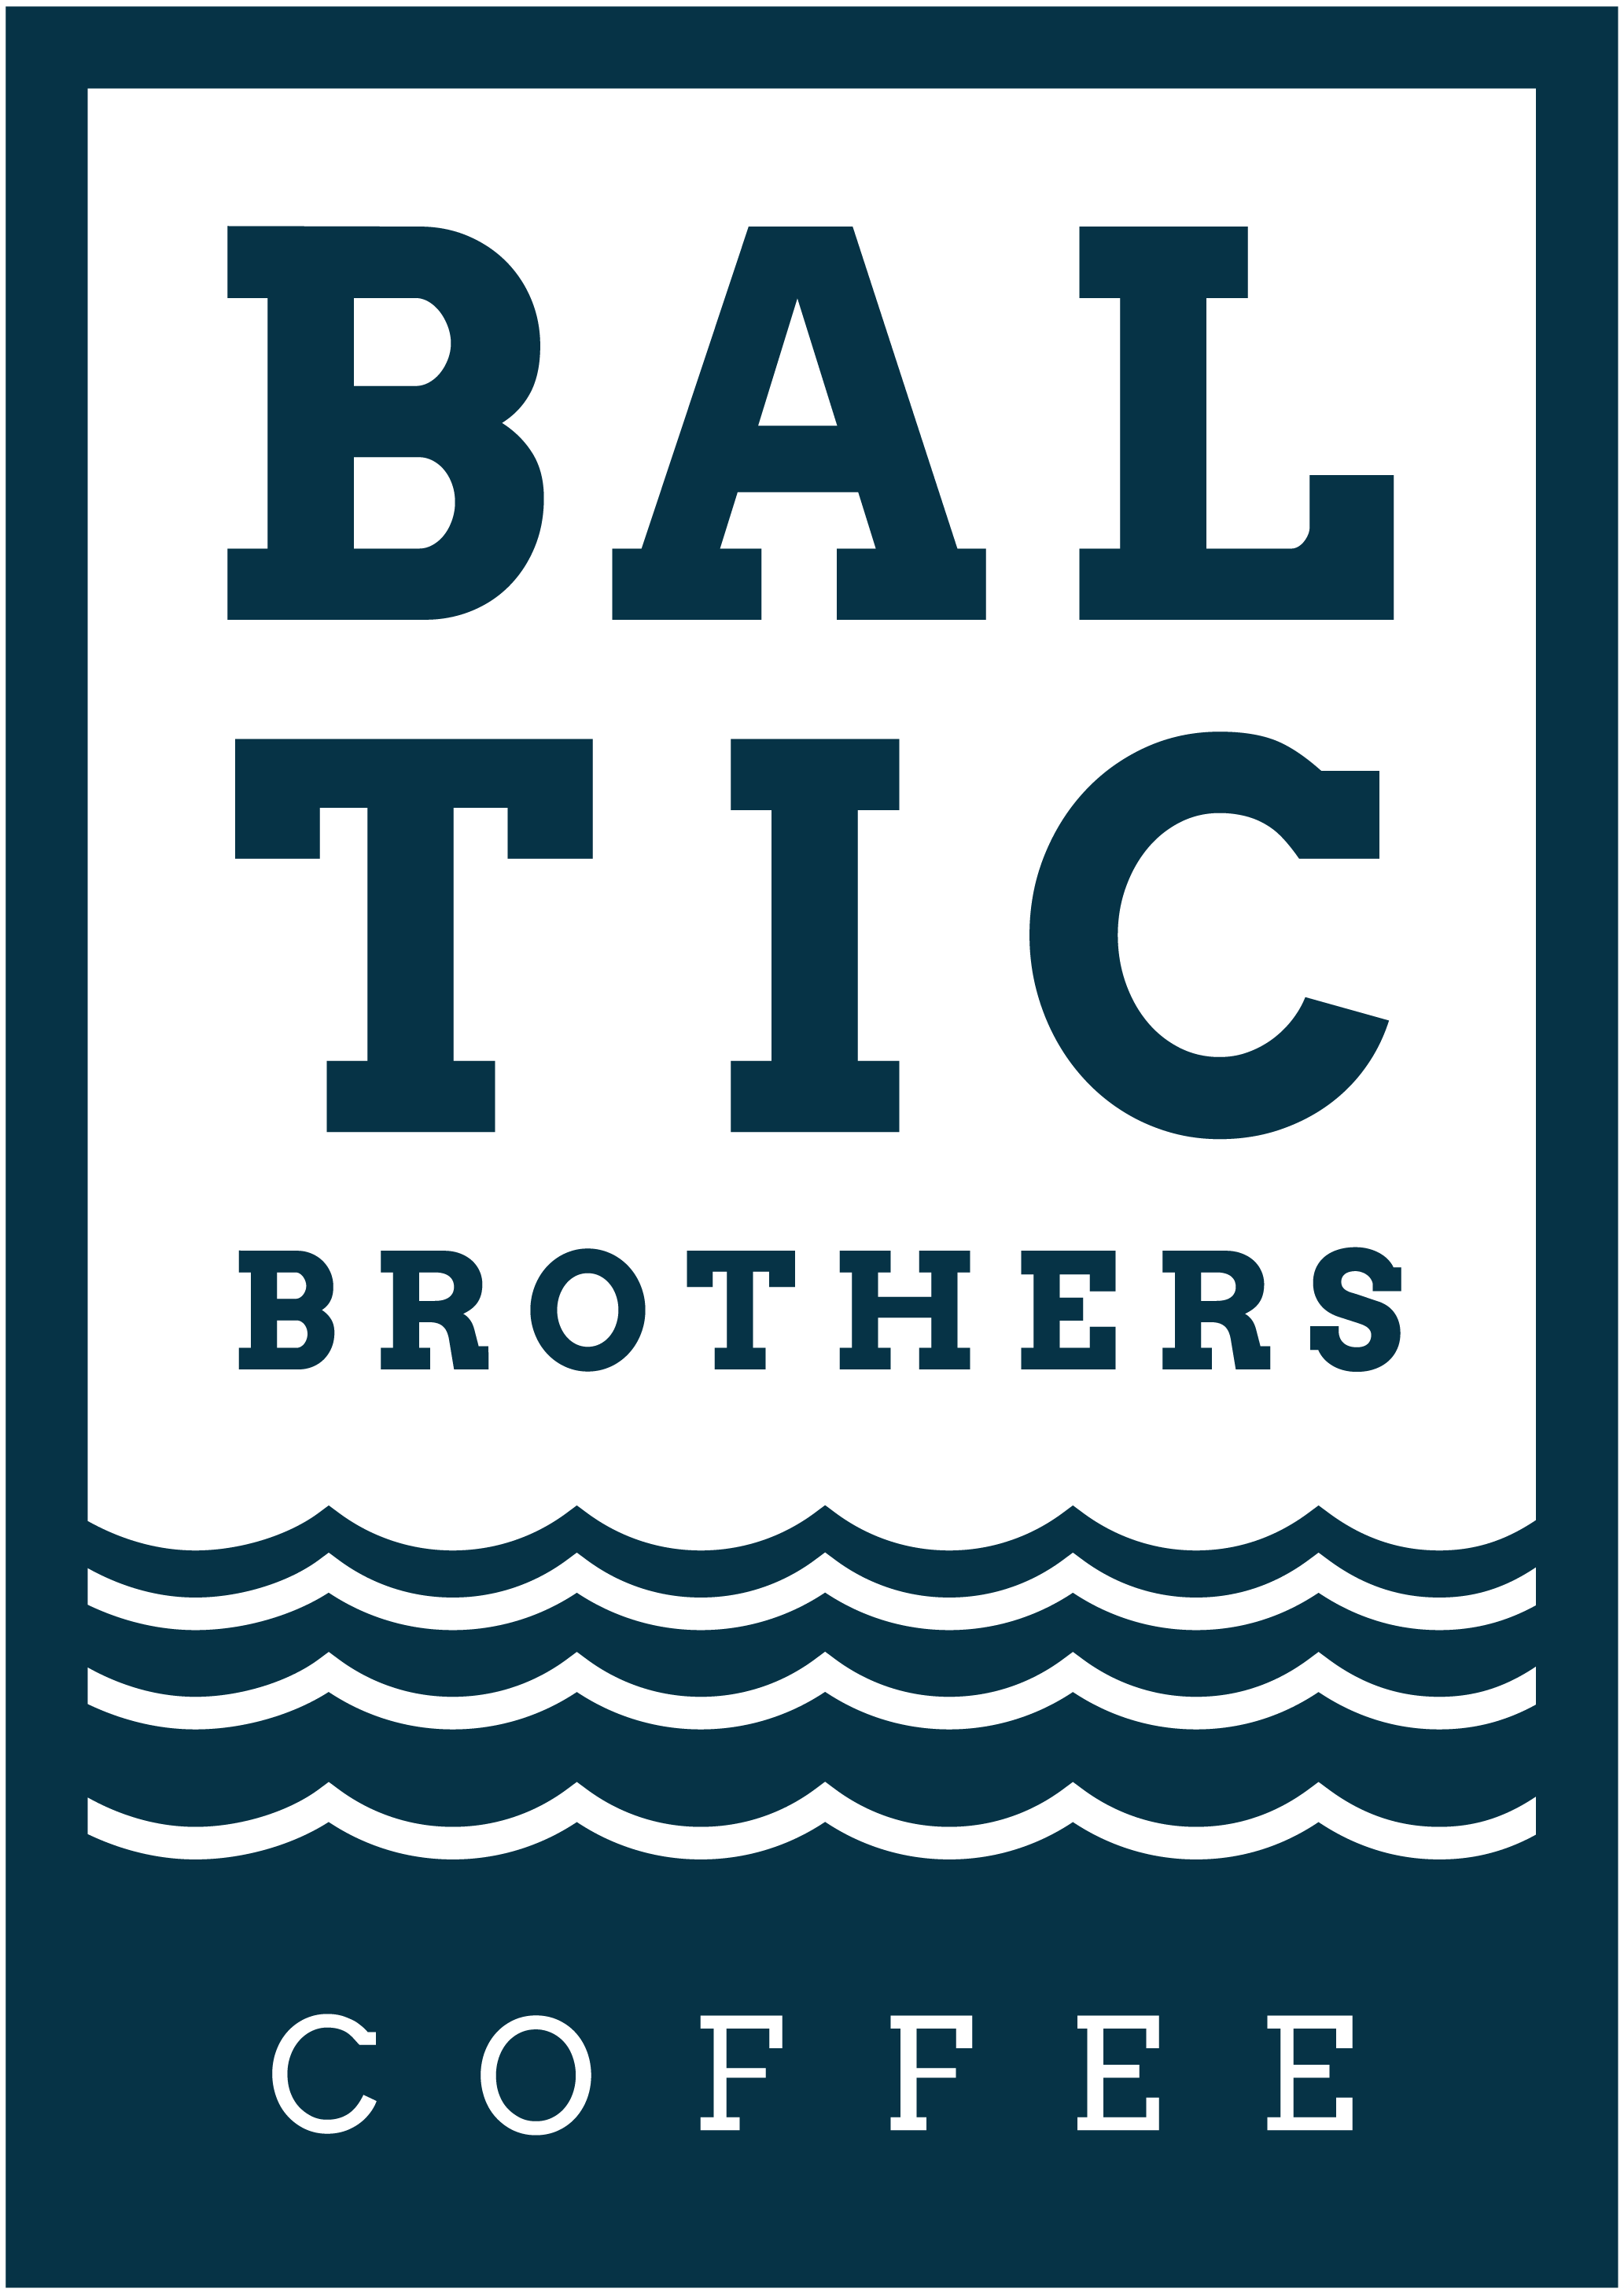 Baltic Brothers Coffee Logo